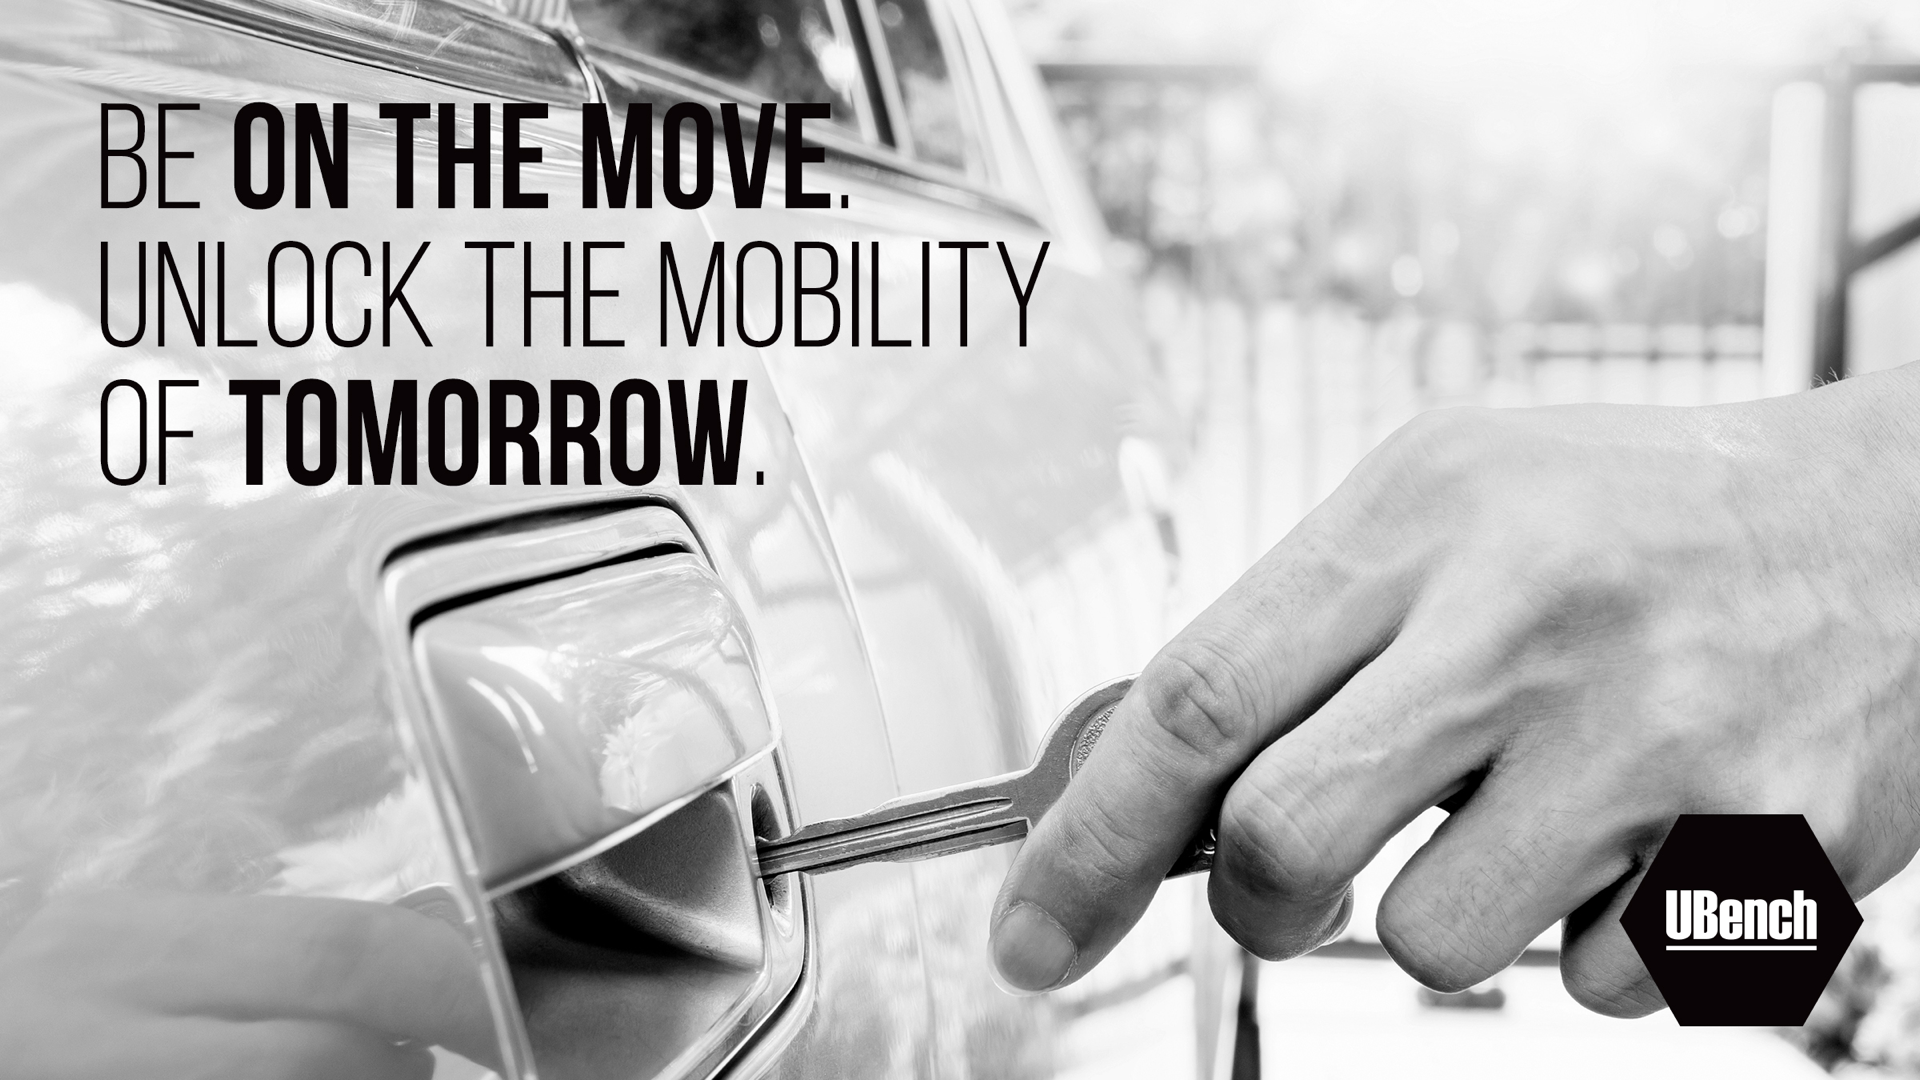 Be on the move. Unlock the mobility of tomorrow.